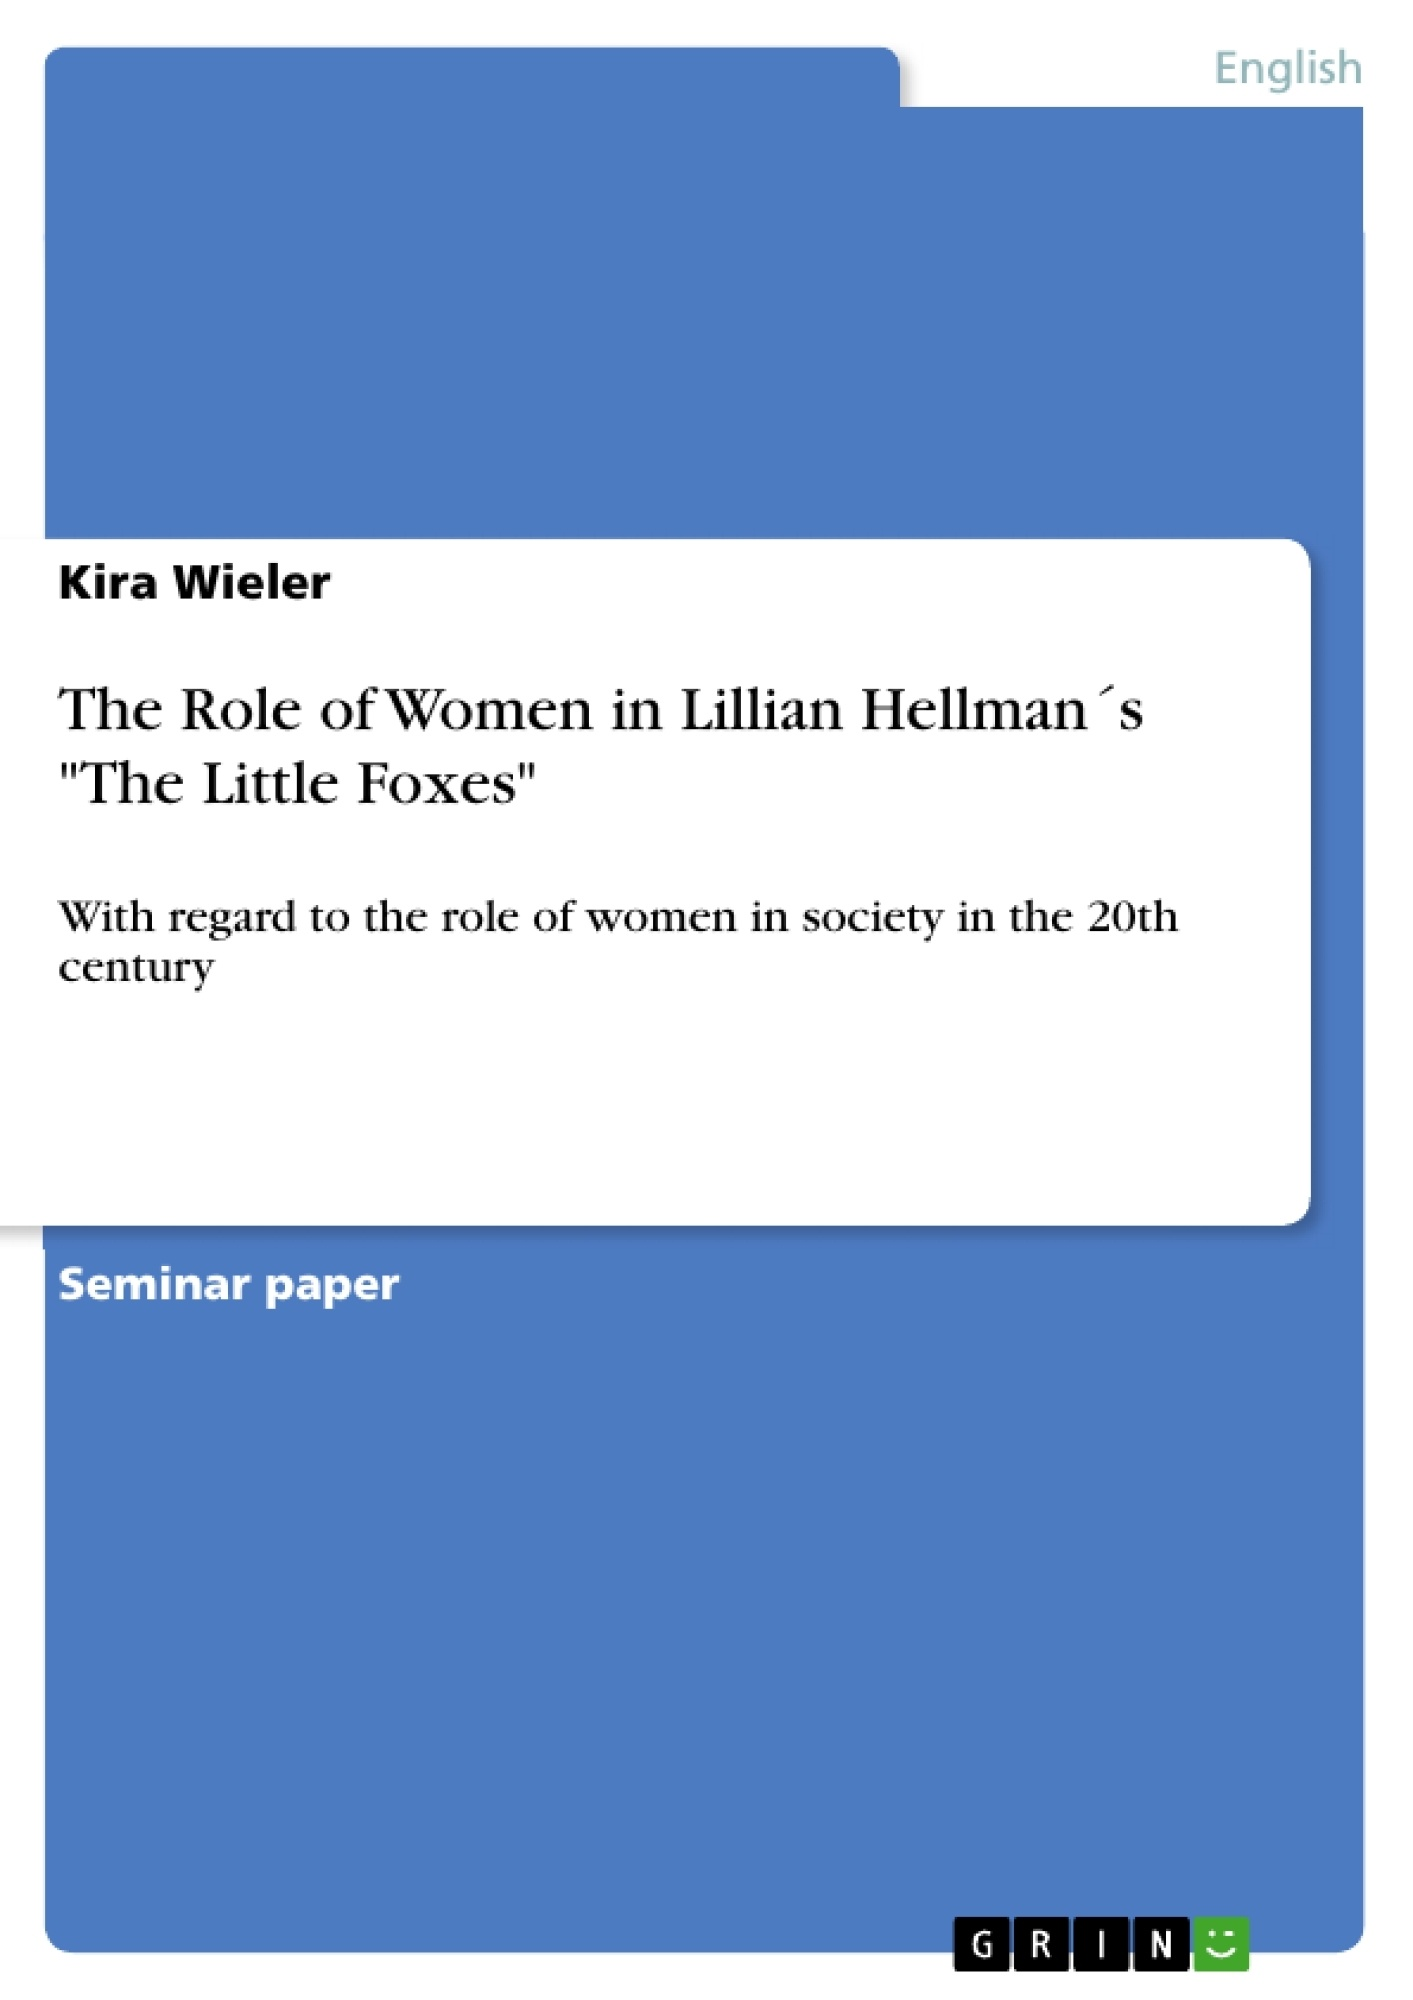 the role of women in lillian hellman´s the little foxes  the role of women in lillian hellman´s the little foxes publish your master s thesis bachelor s thesis essay or term paper